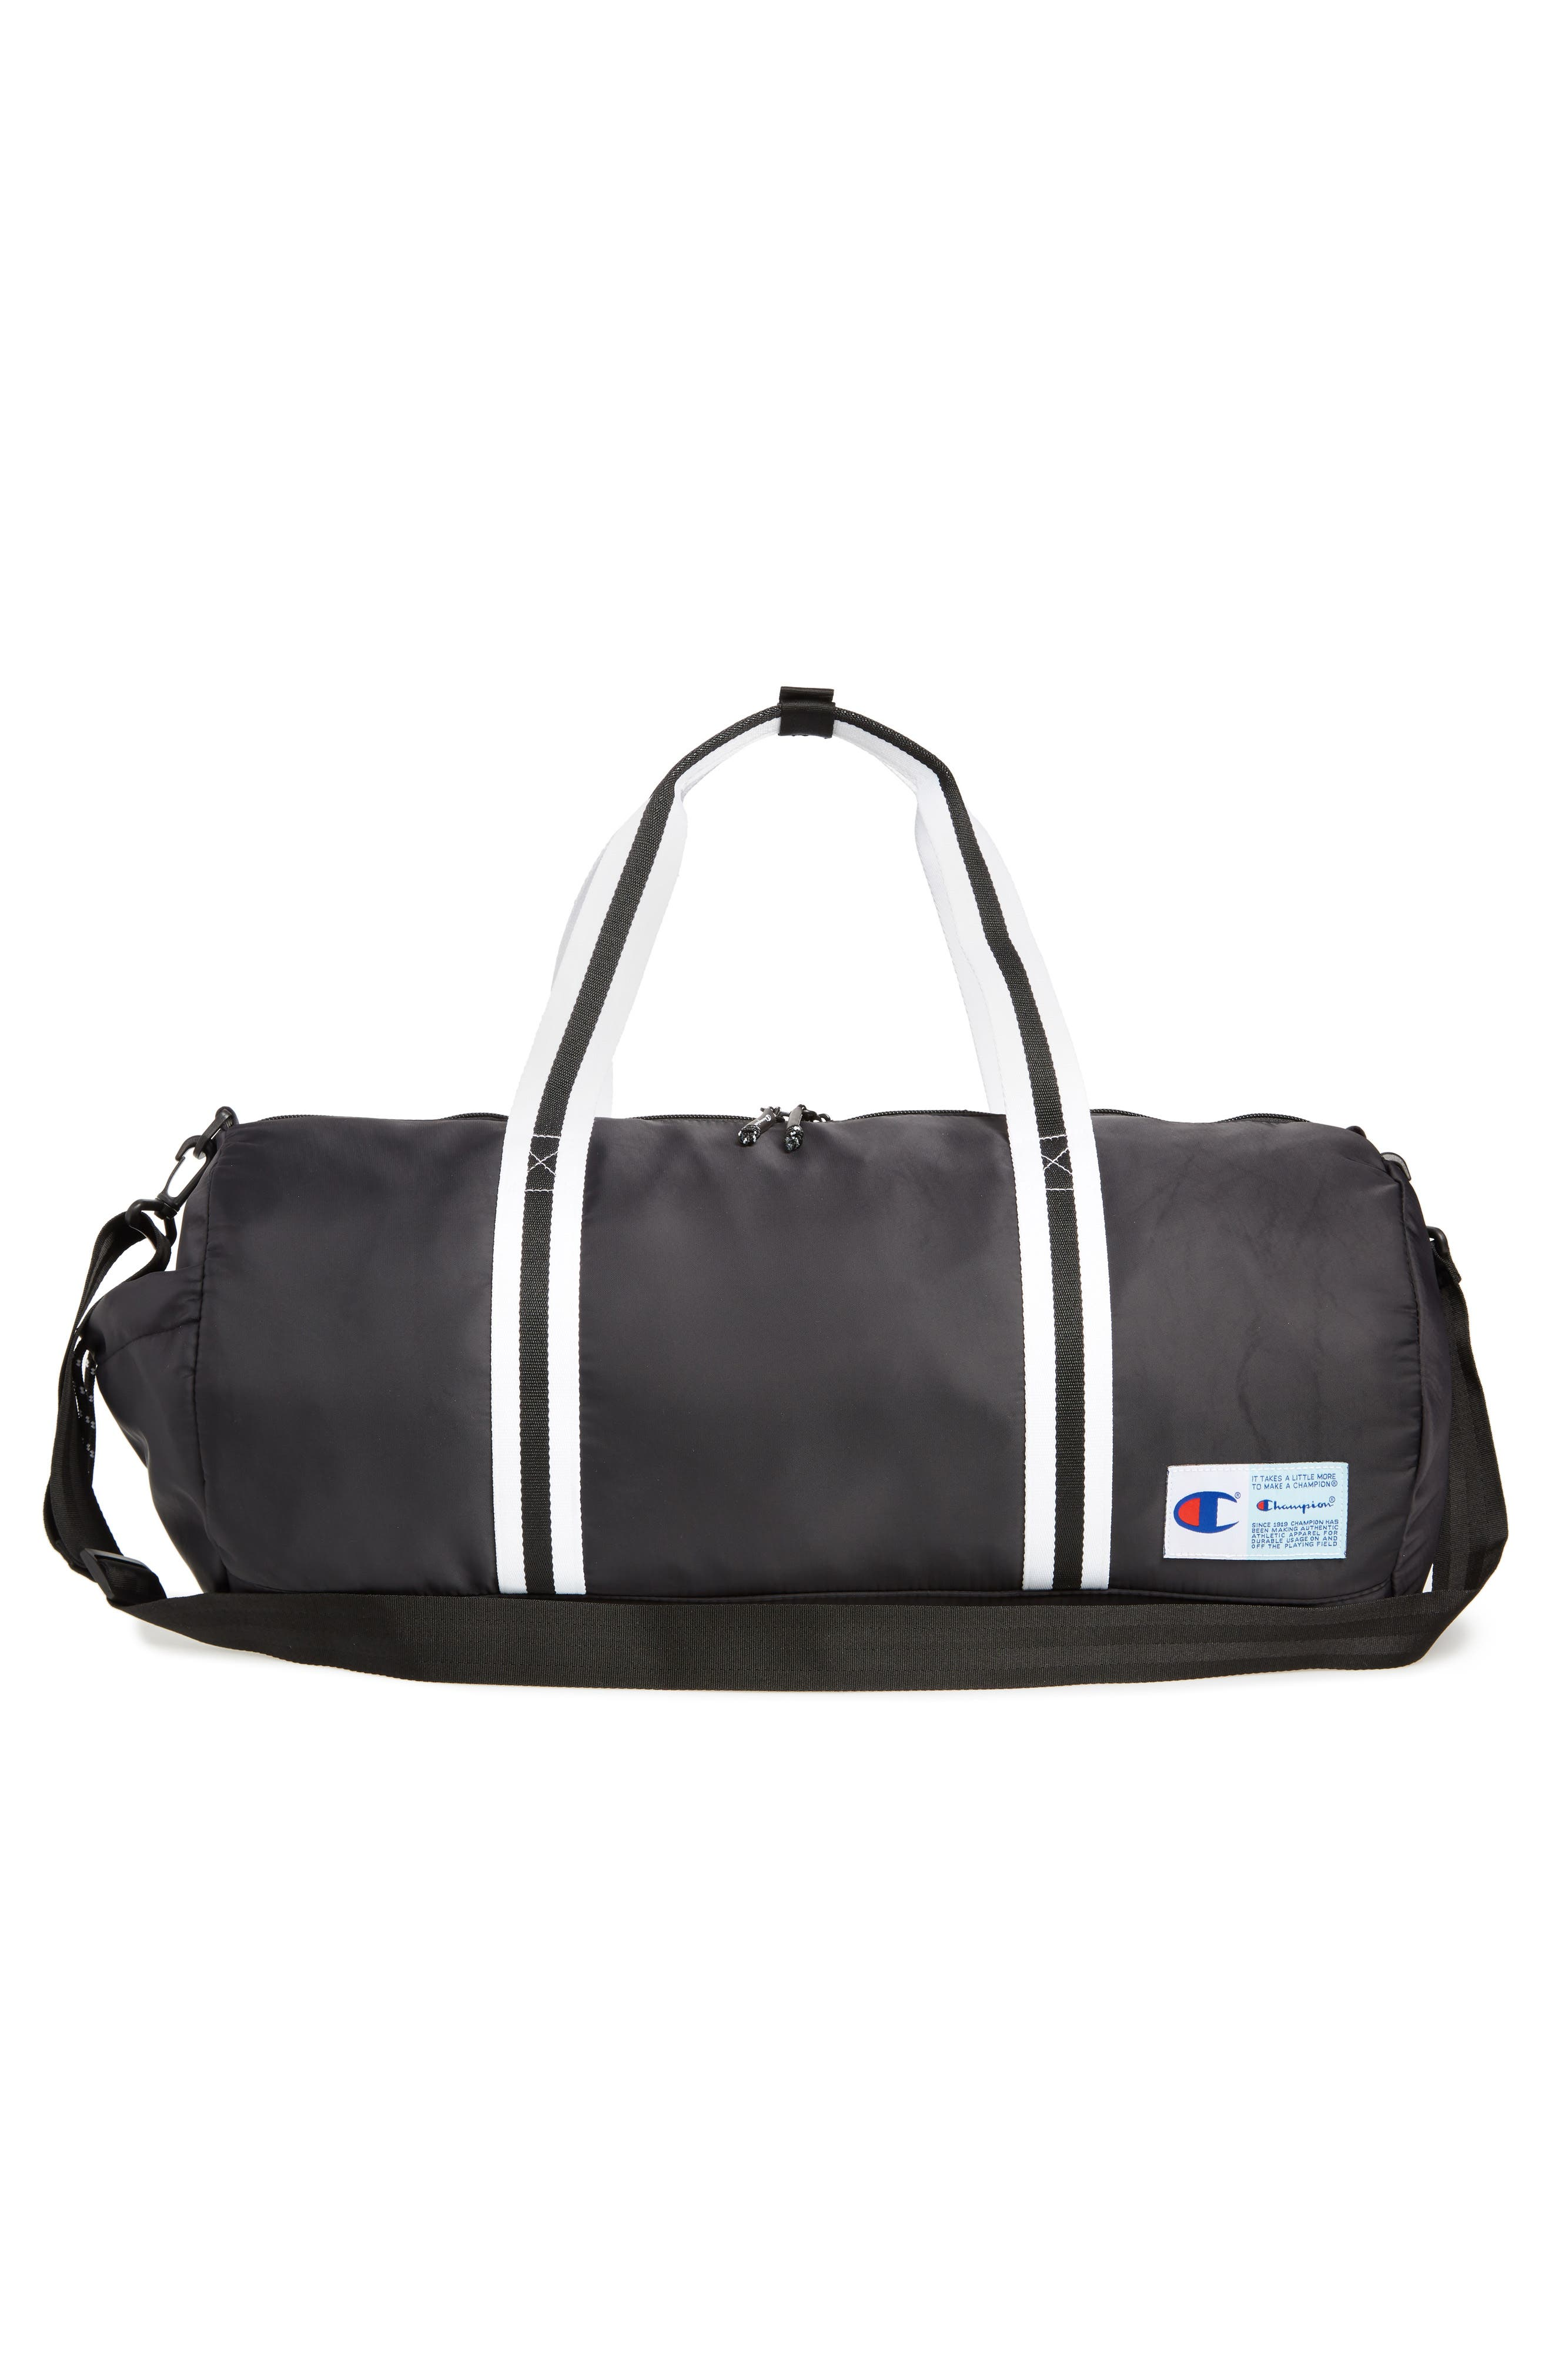 Free Form Duffel Bag,                             Alternate thumbnail 3, color,                             BLACK